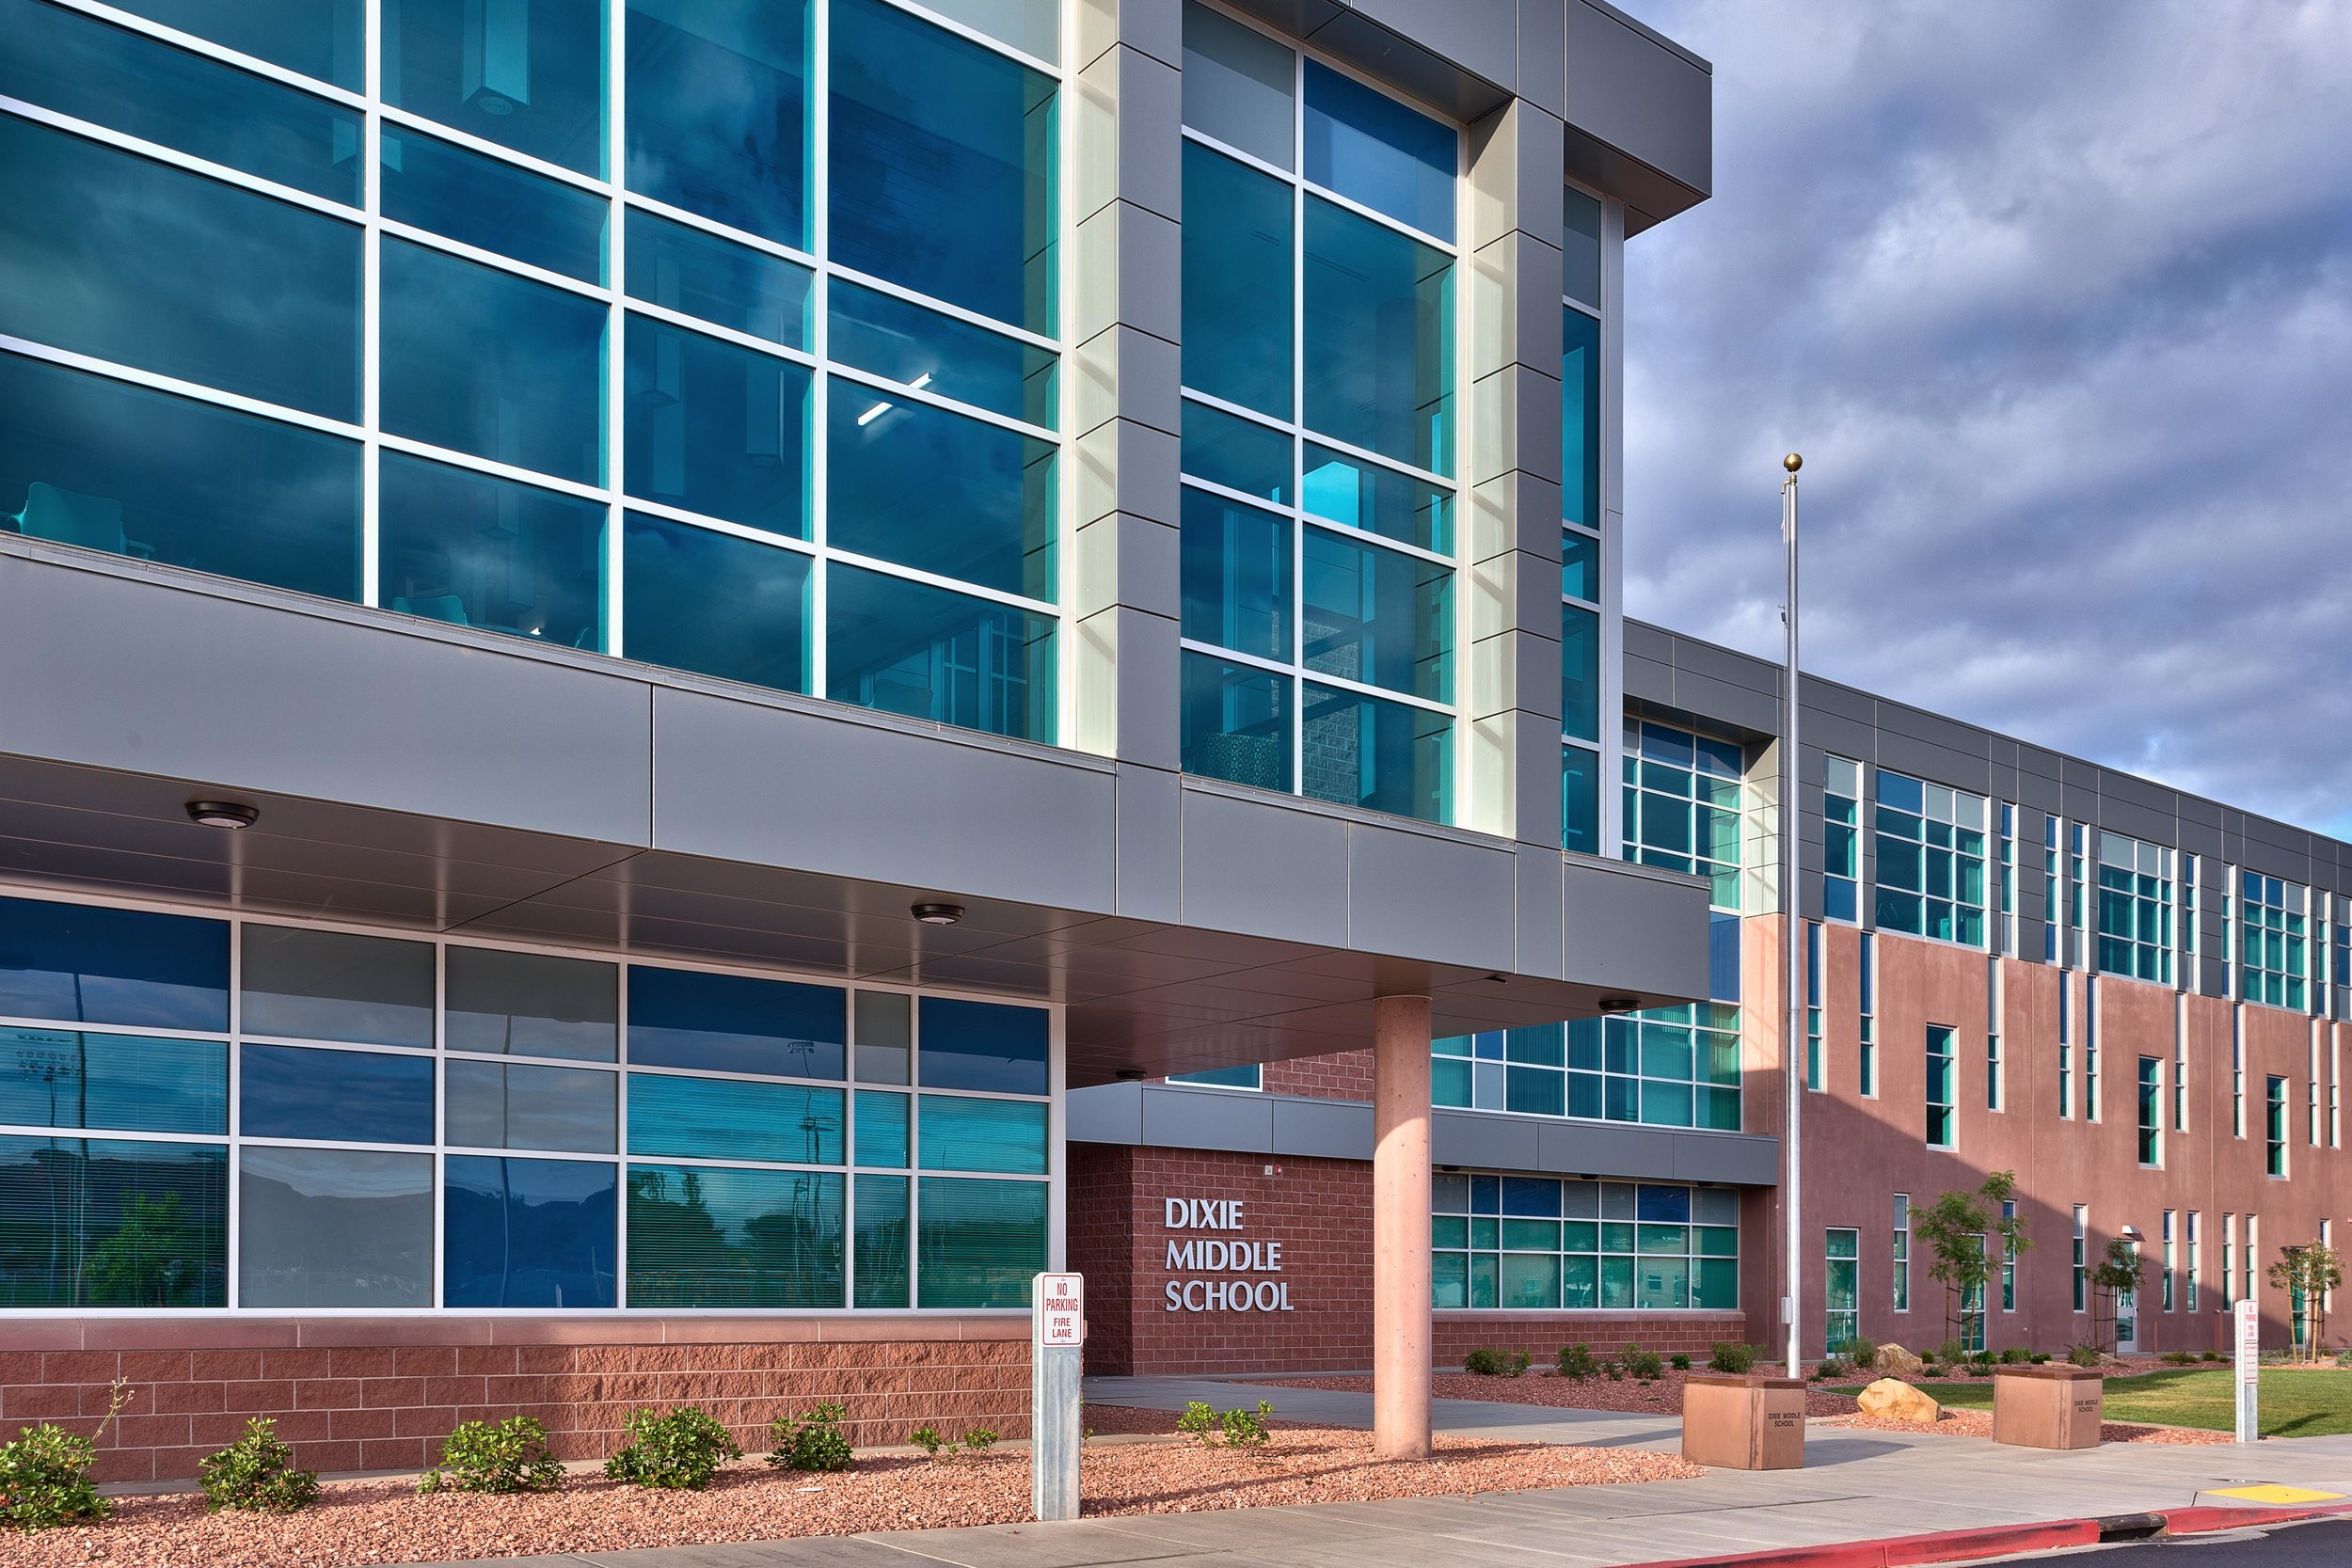 BHB_Dixie Middle School Side Exterior 2.jpg